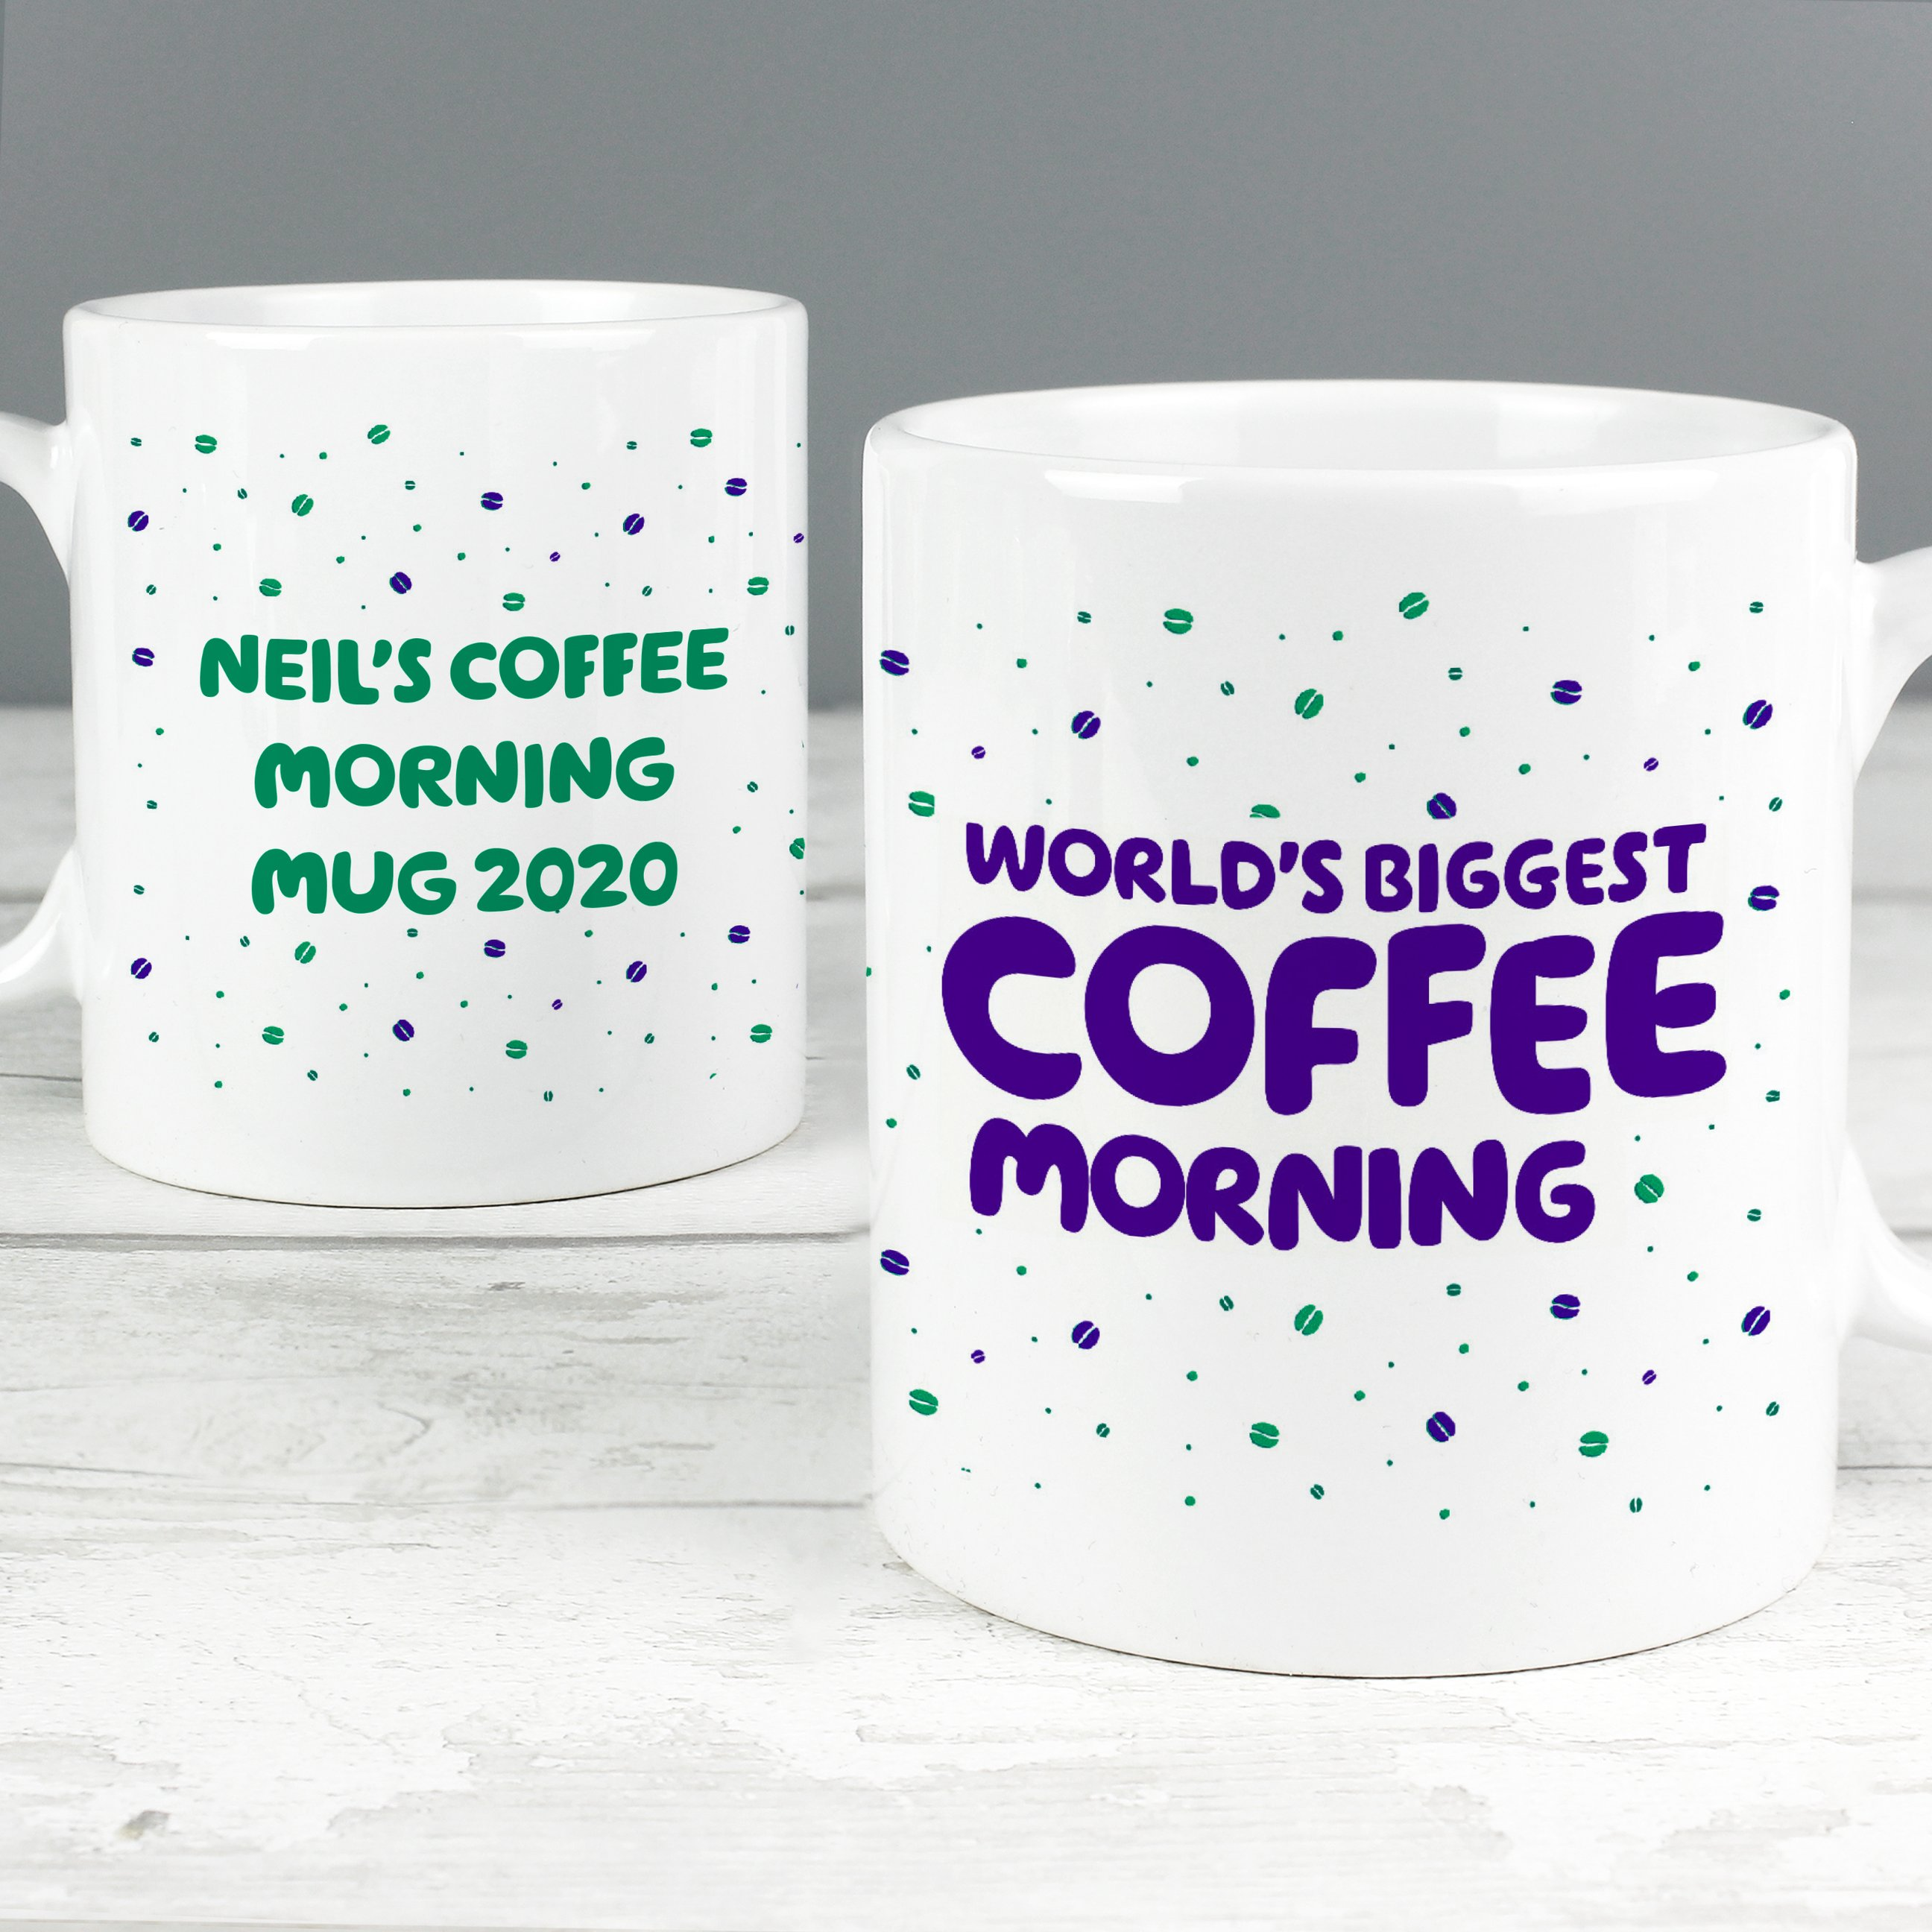 Personalised coffee morning cup that reads 'Neil's coffee morning mug 2020' on one and 'world's biggest coffee morning' on the other.